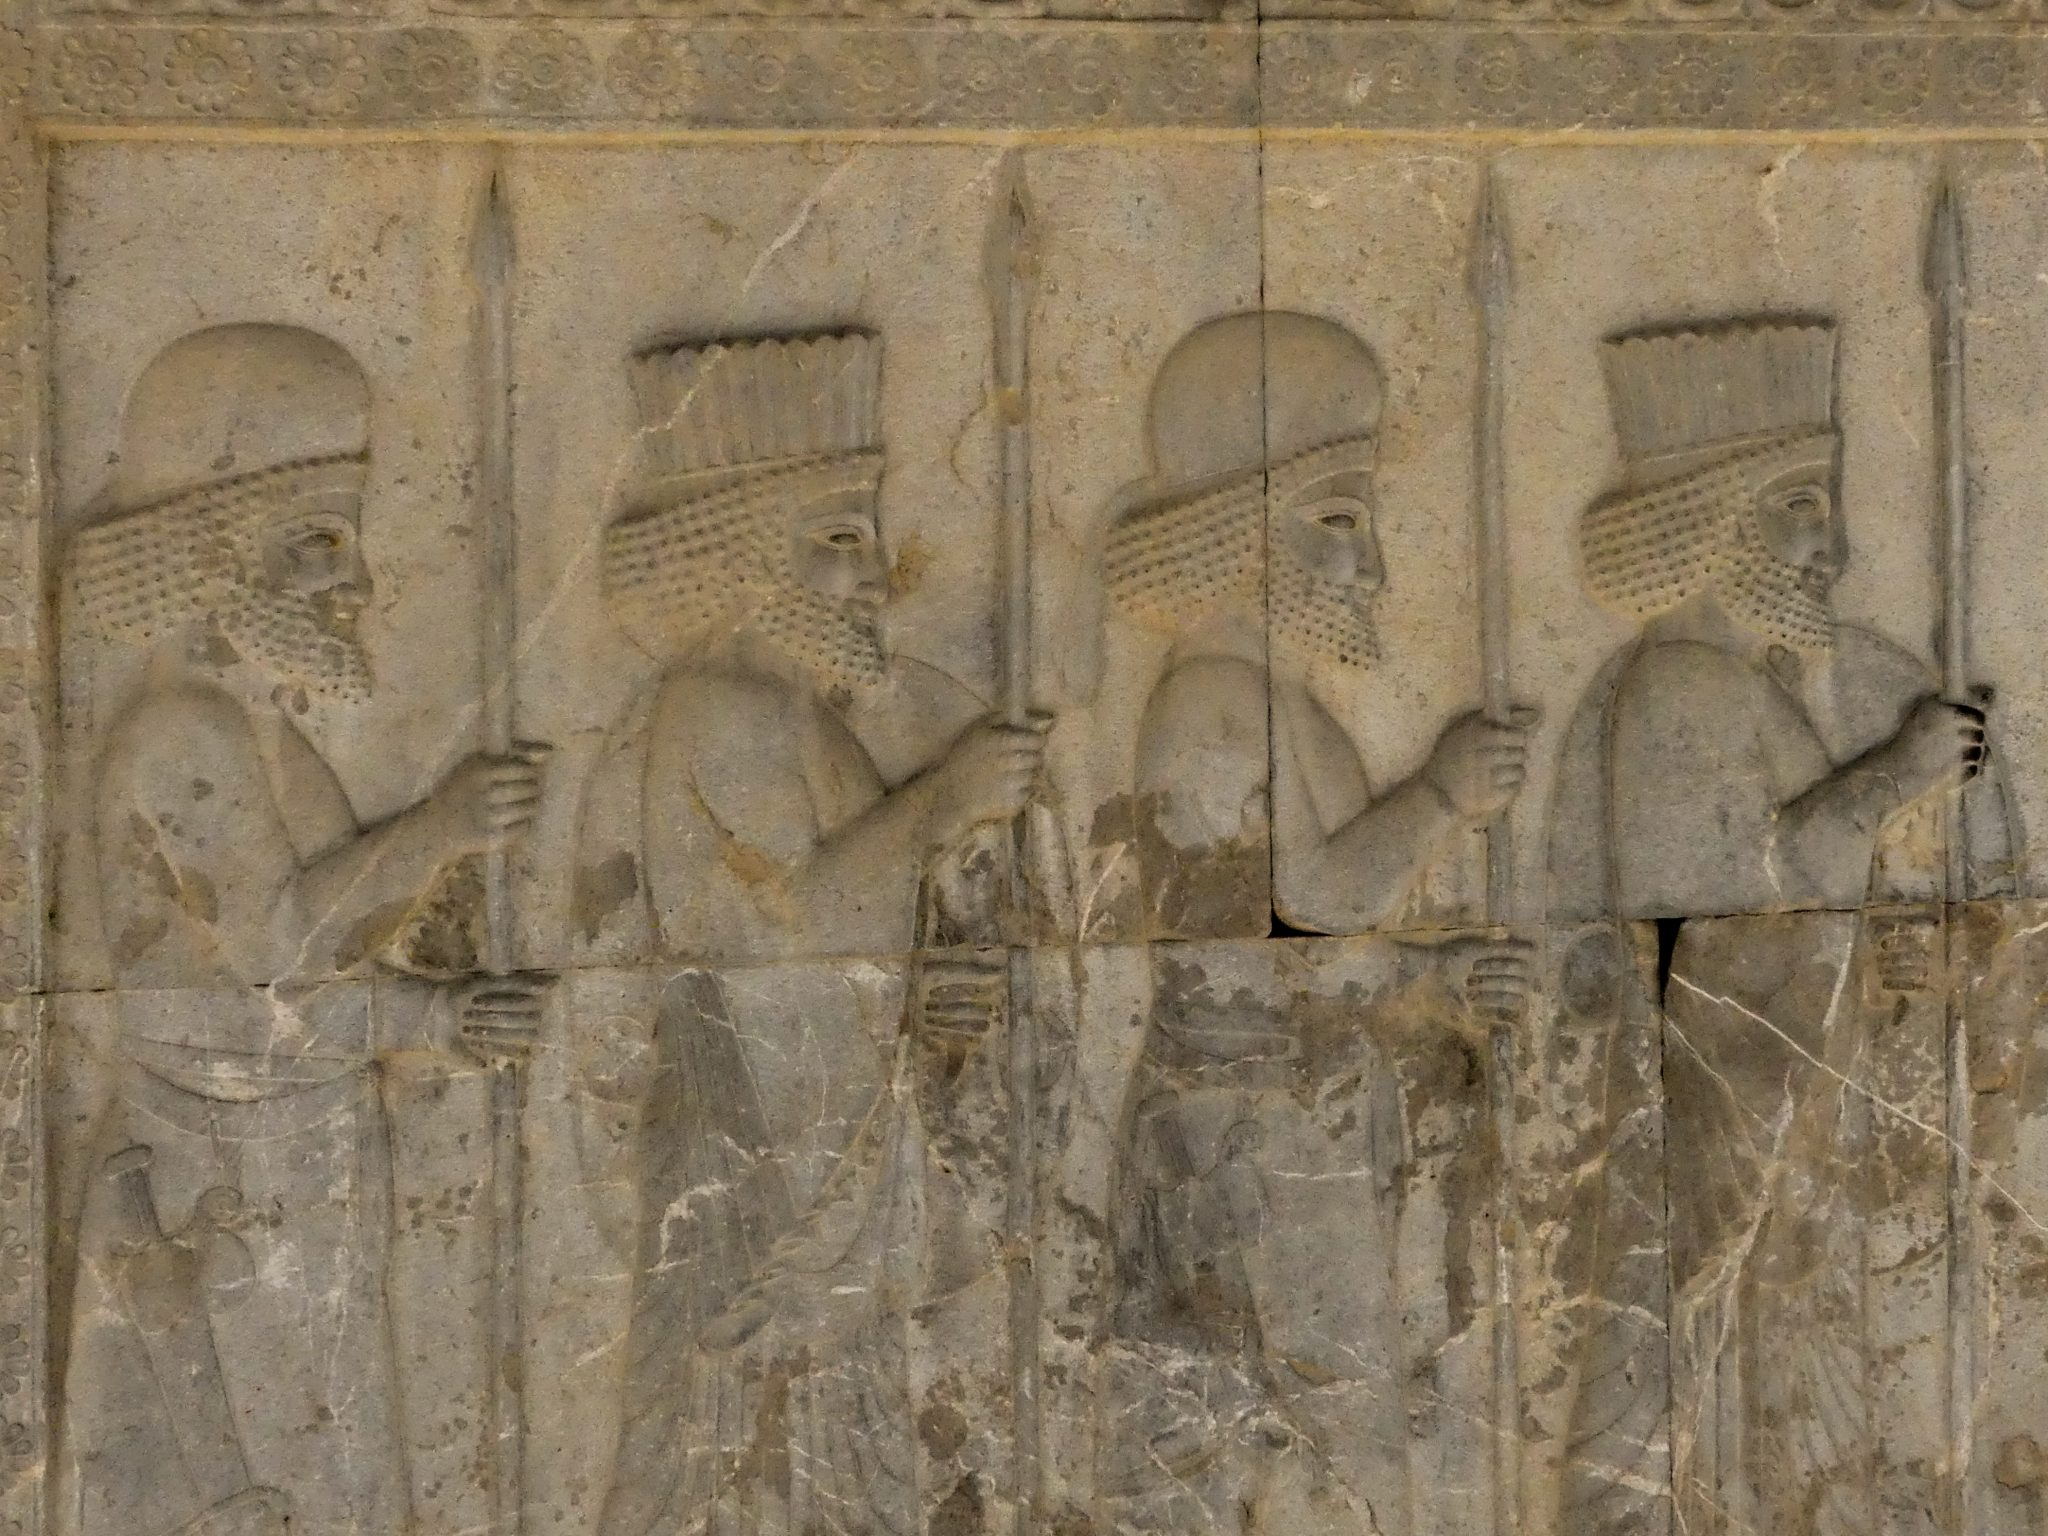 Persepolis Guard Carvings